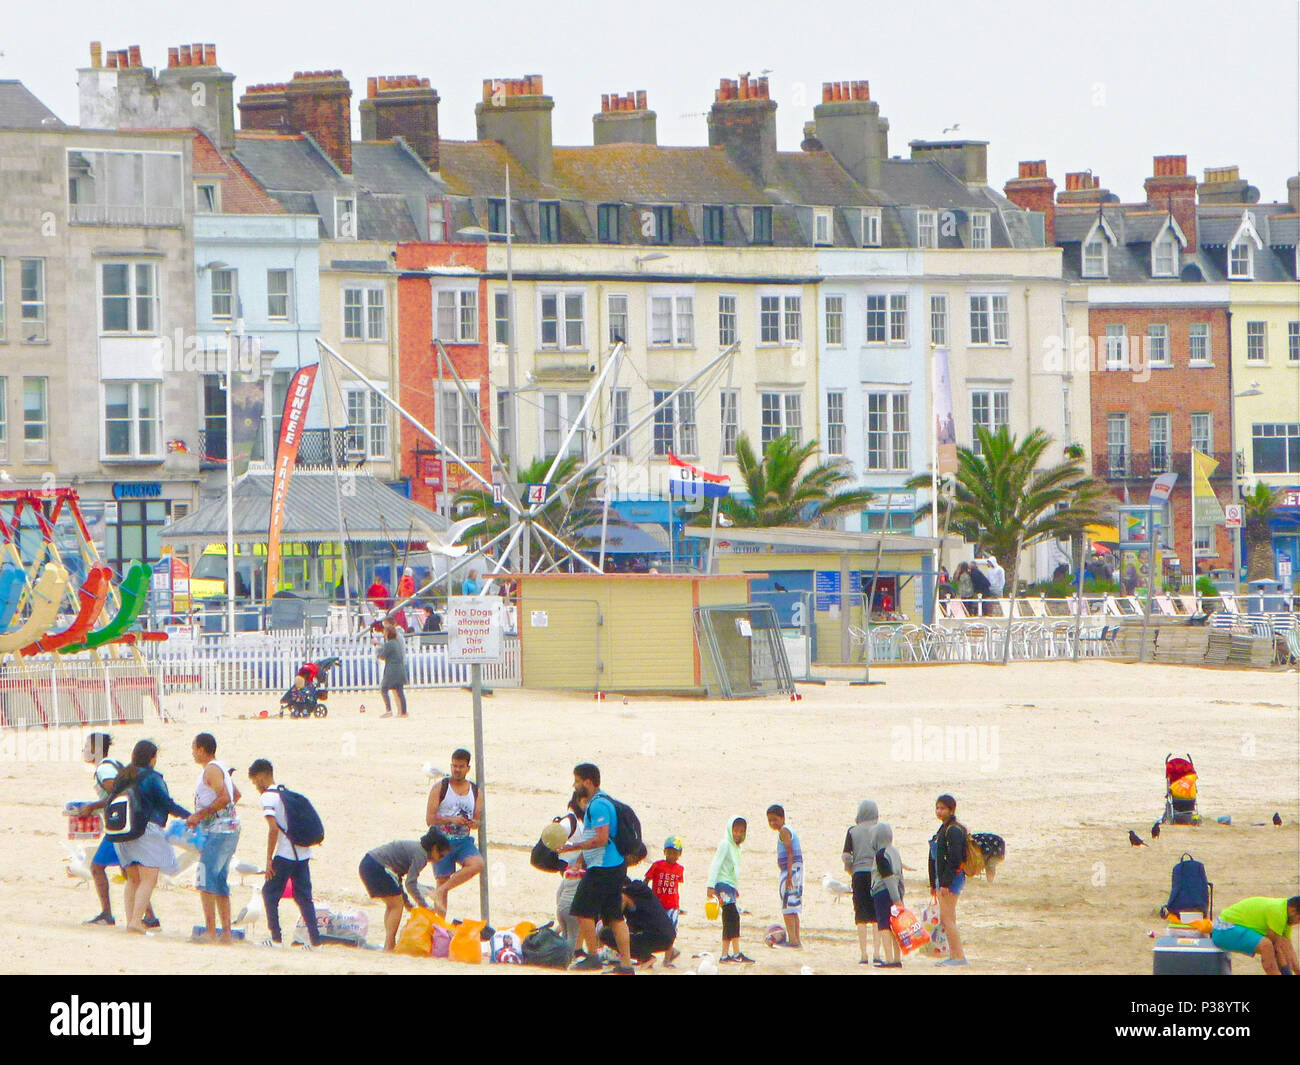 Weymouth, UK. 17th June 2018. Weymouth beach is surprisingly busy for such a chilly and overcast day Credit: stuart fretwell/Alamy Live News - Stock Image